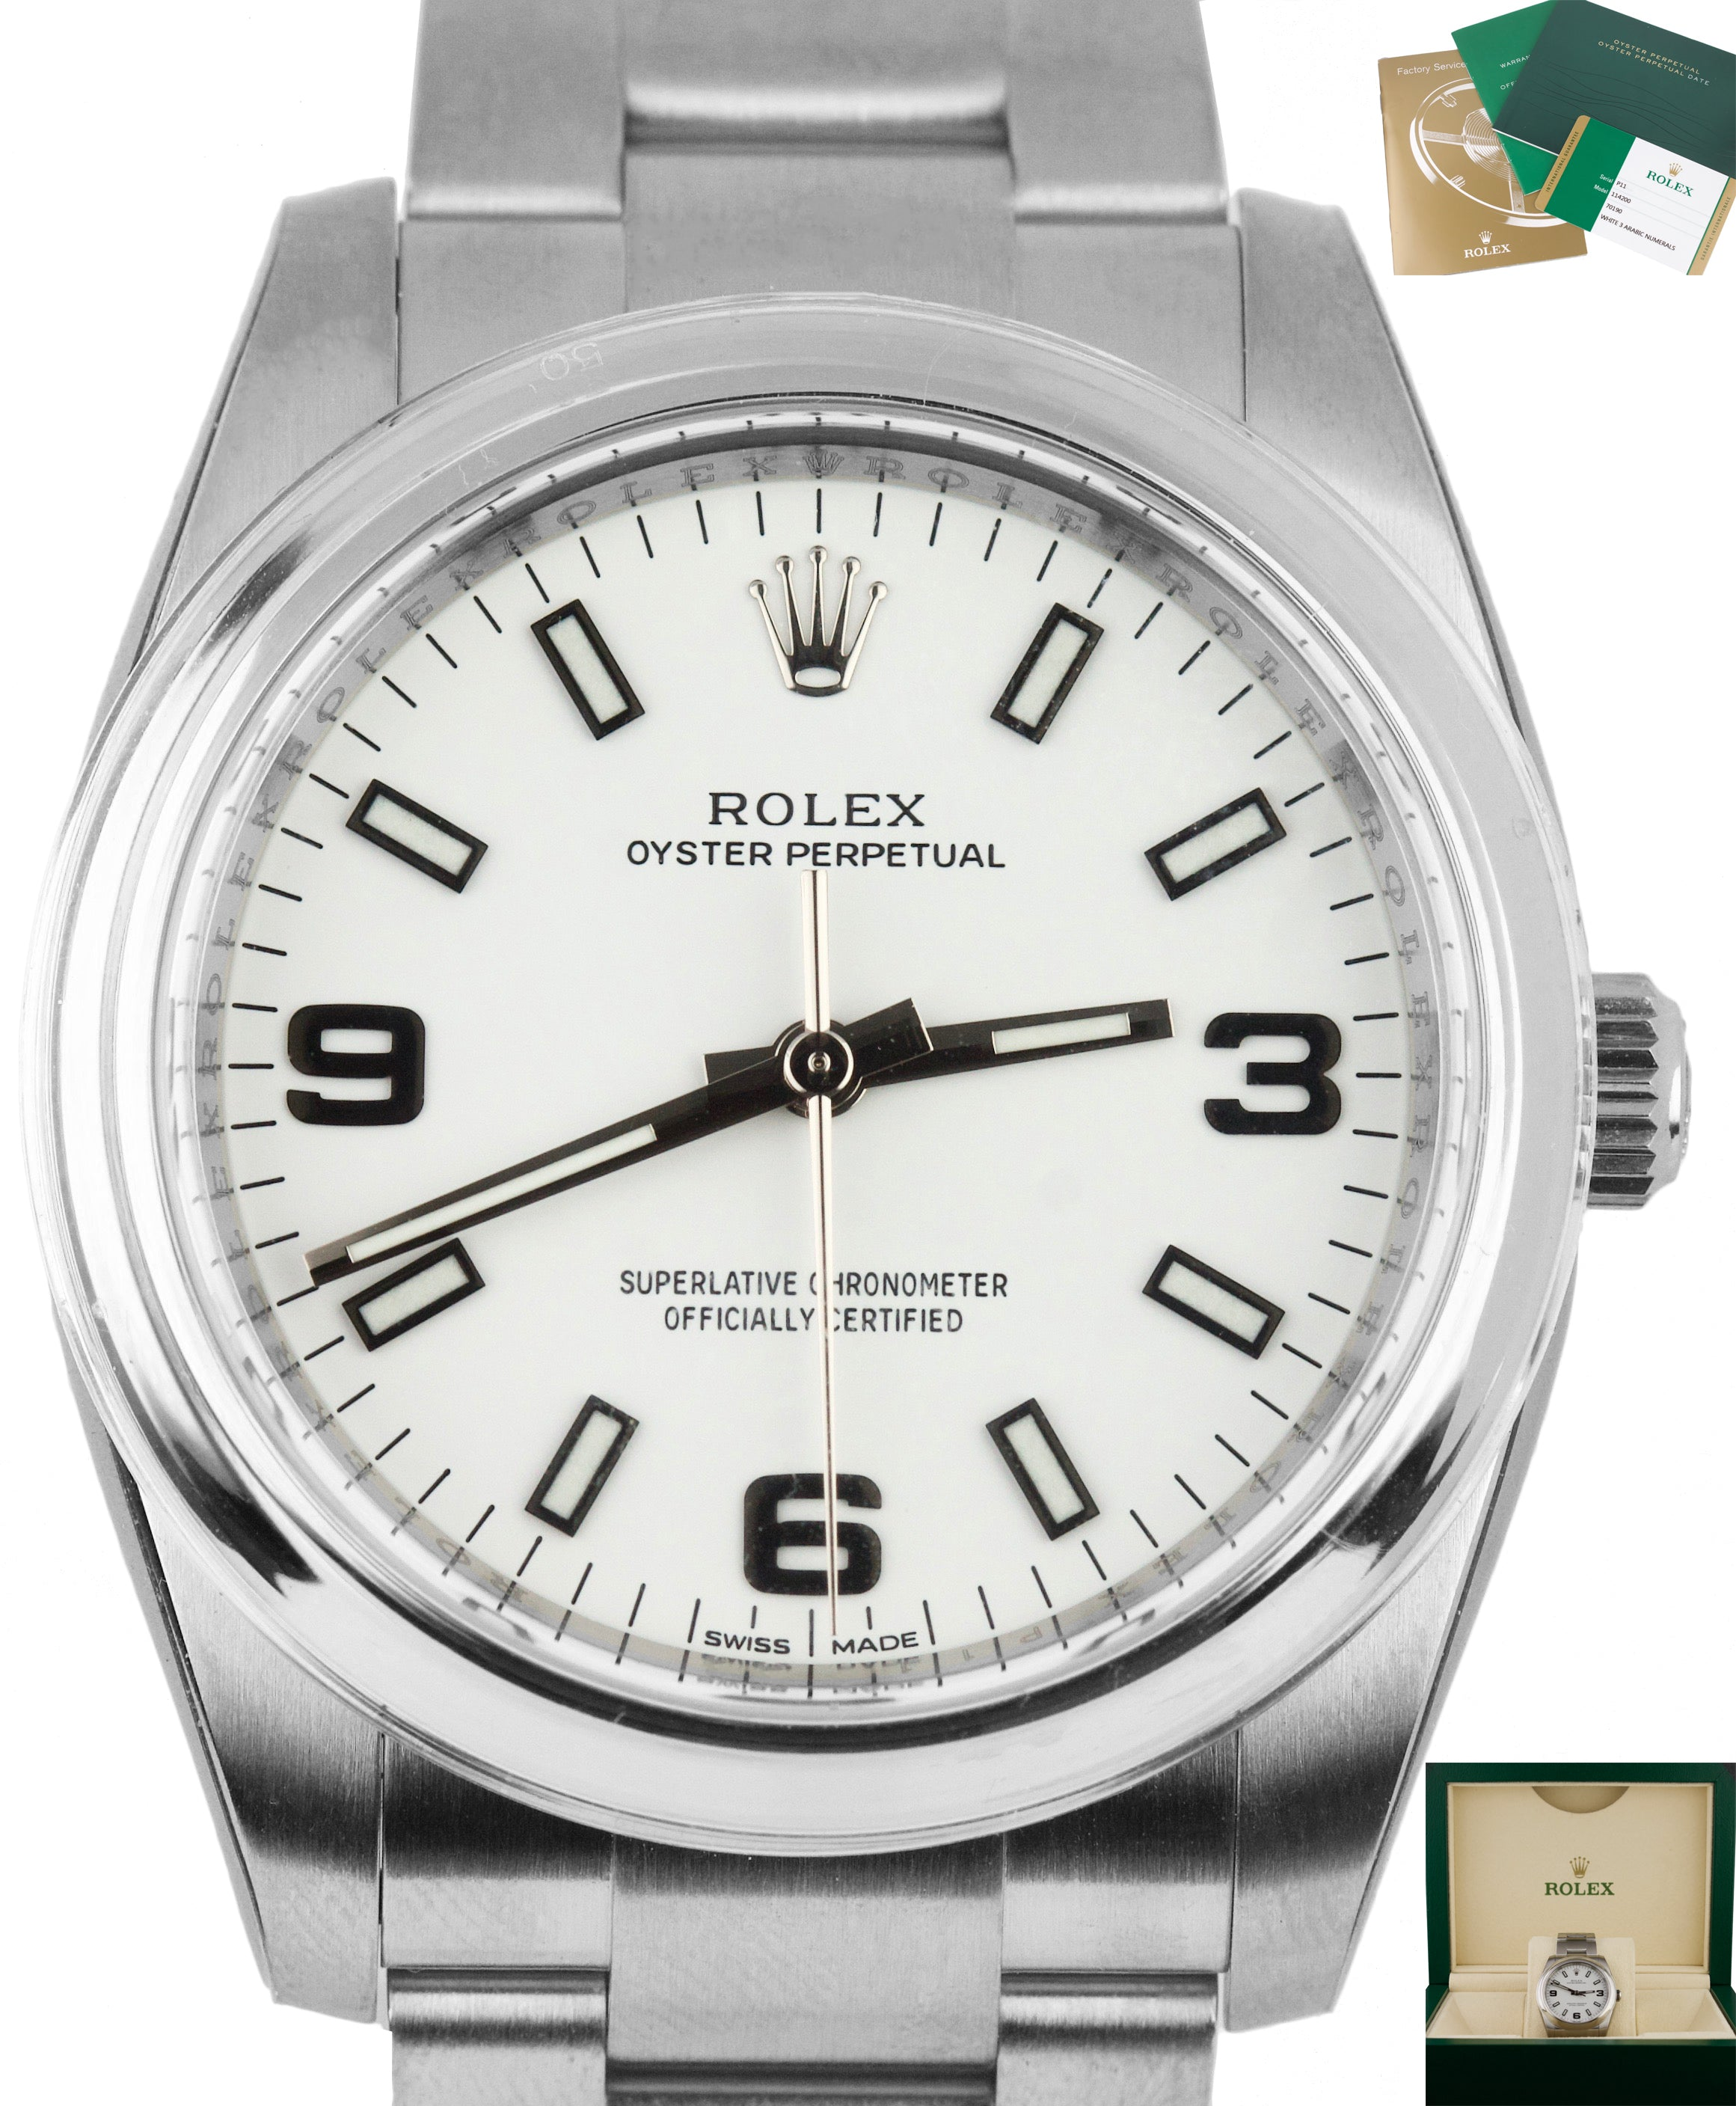 2014 BRAND NEW Rolex Oyster Perpetual 34mm White 114200 Stainless Engraved Watch